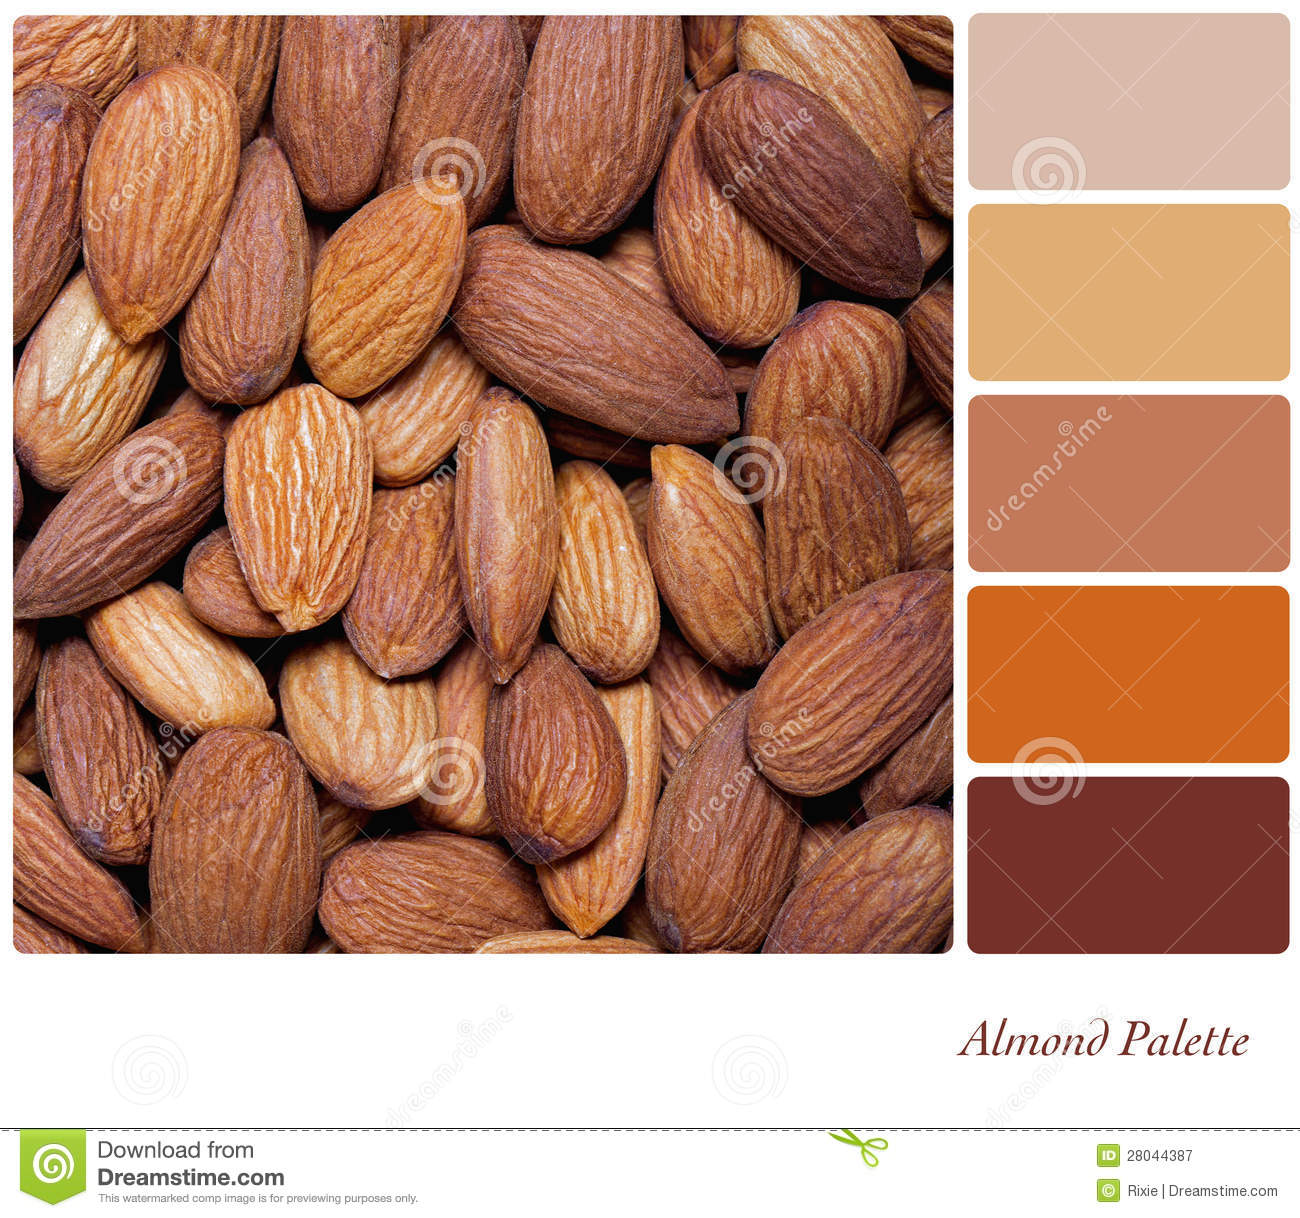 Almond palette royalty free stock photography image for Color almendra pintura